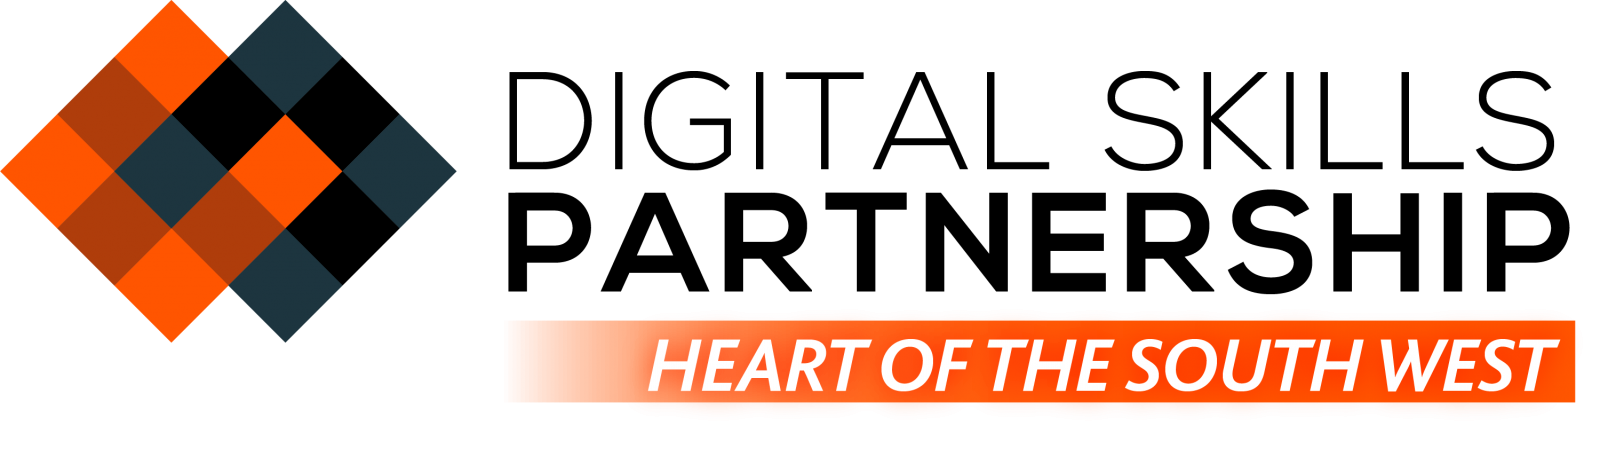 Digital Skills Partnership Logo (Heart of the South West)